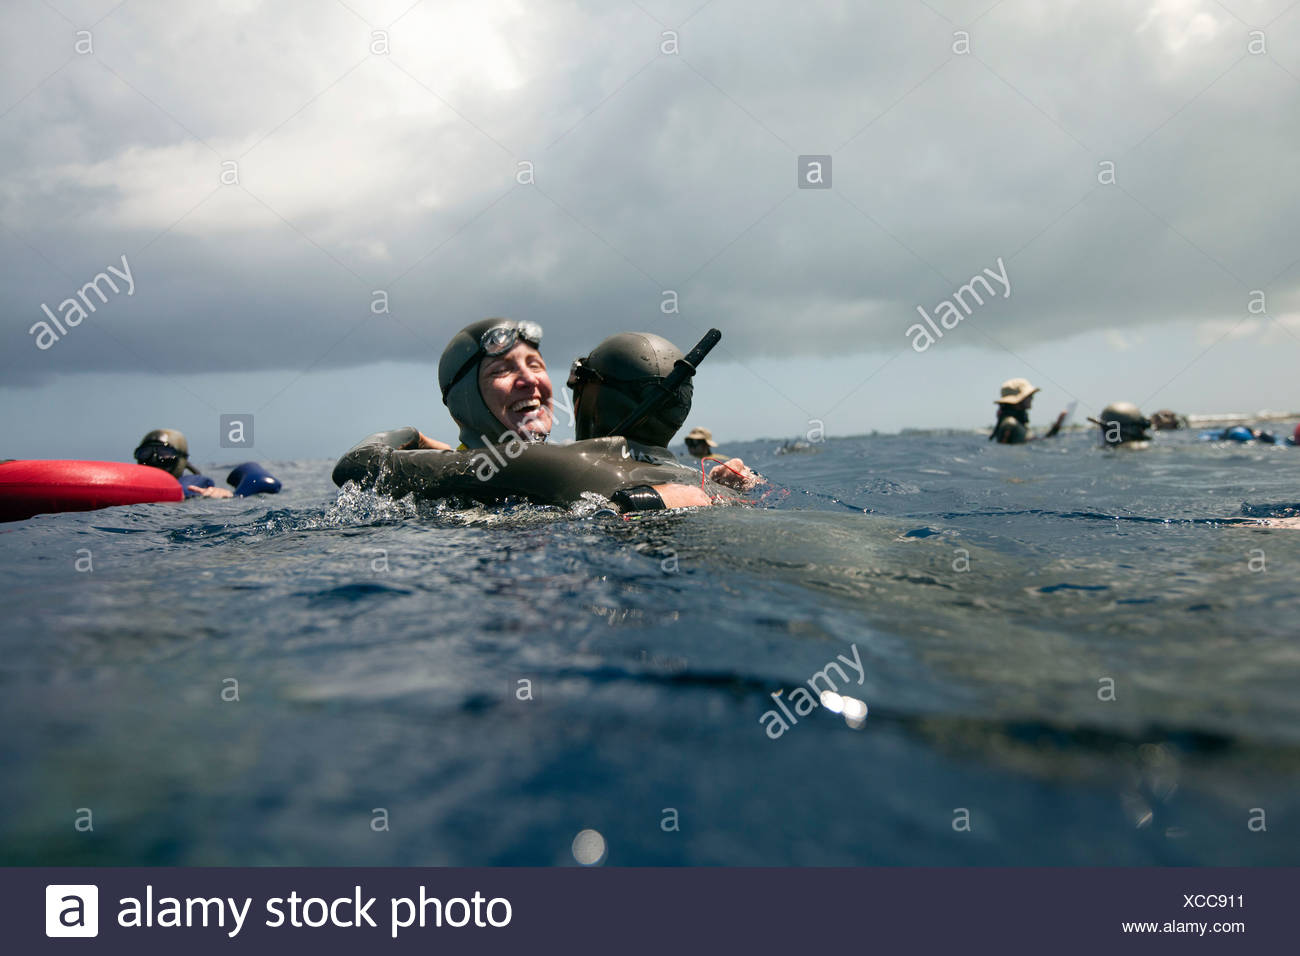 Erin Magee celebrates at the surface after completing her sixth USA national record with a constant weight dive to 81 meters. - Stock Image